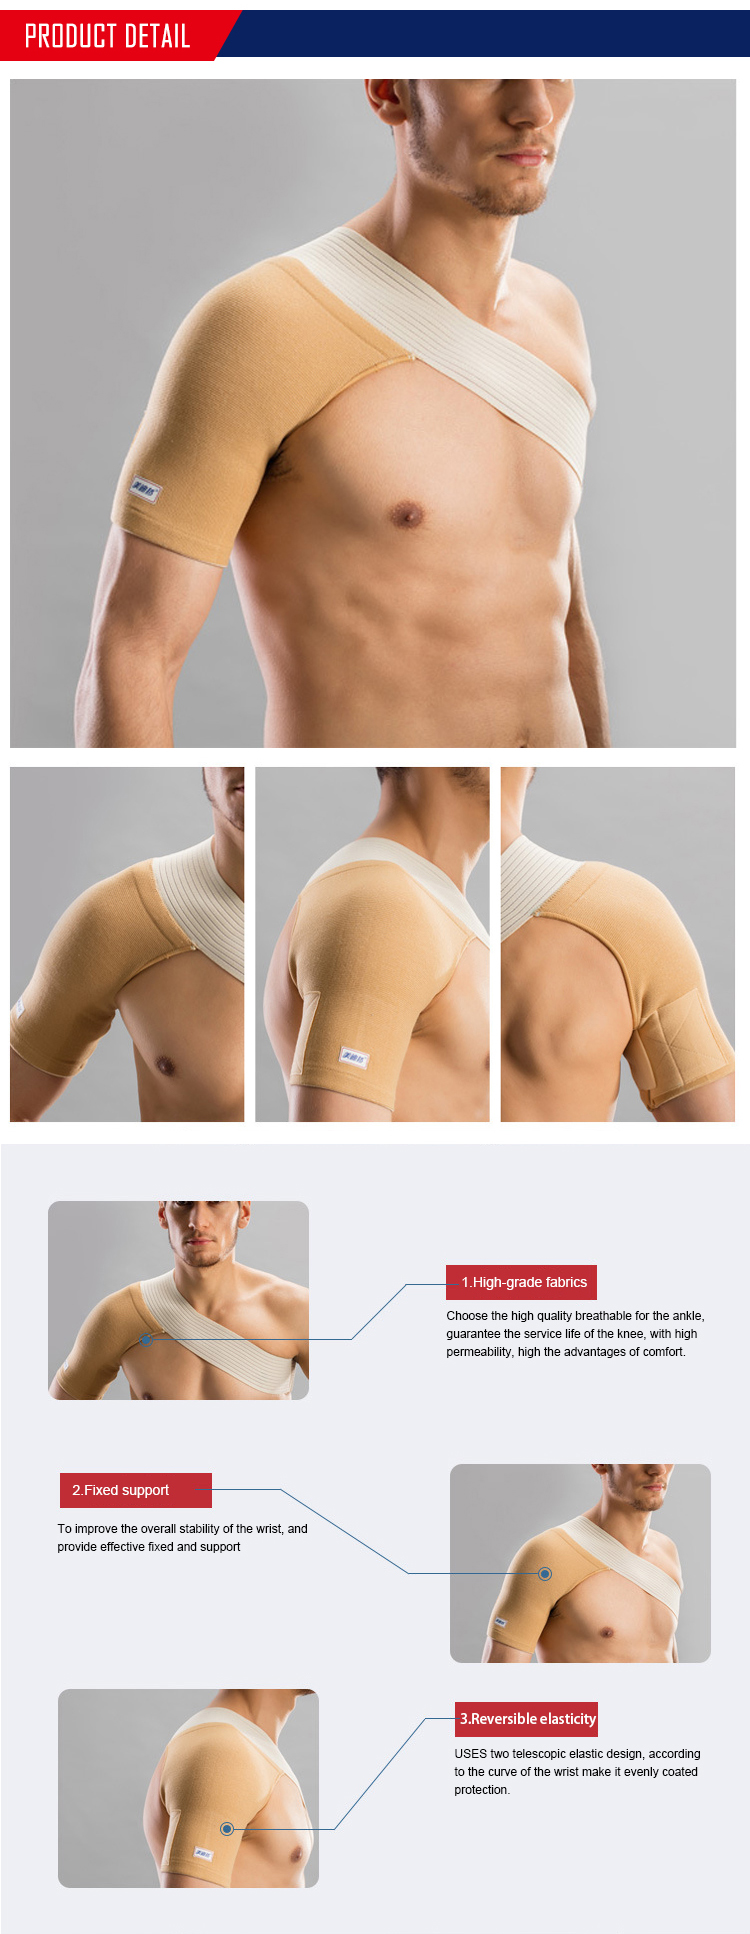 Comfortable adjustable pain relief shoulder sleeve support